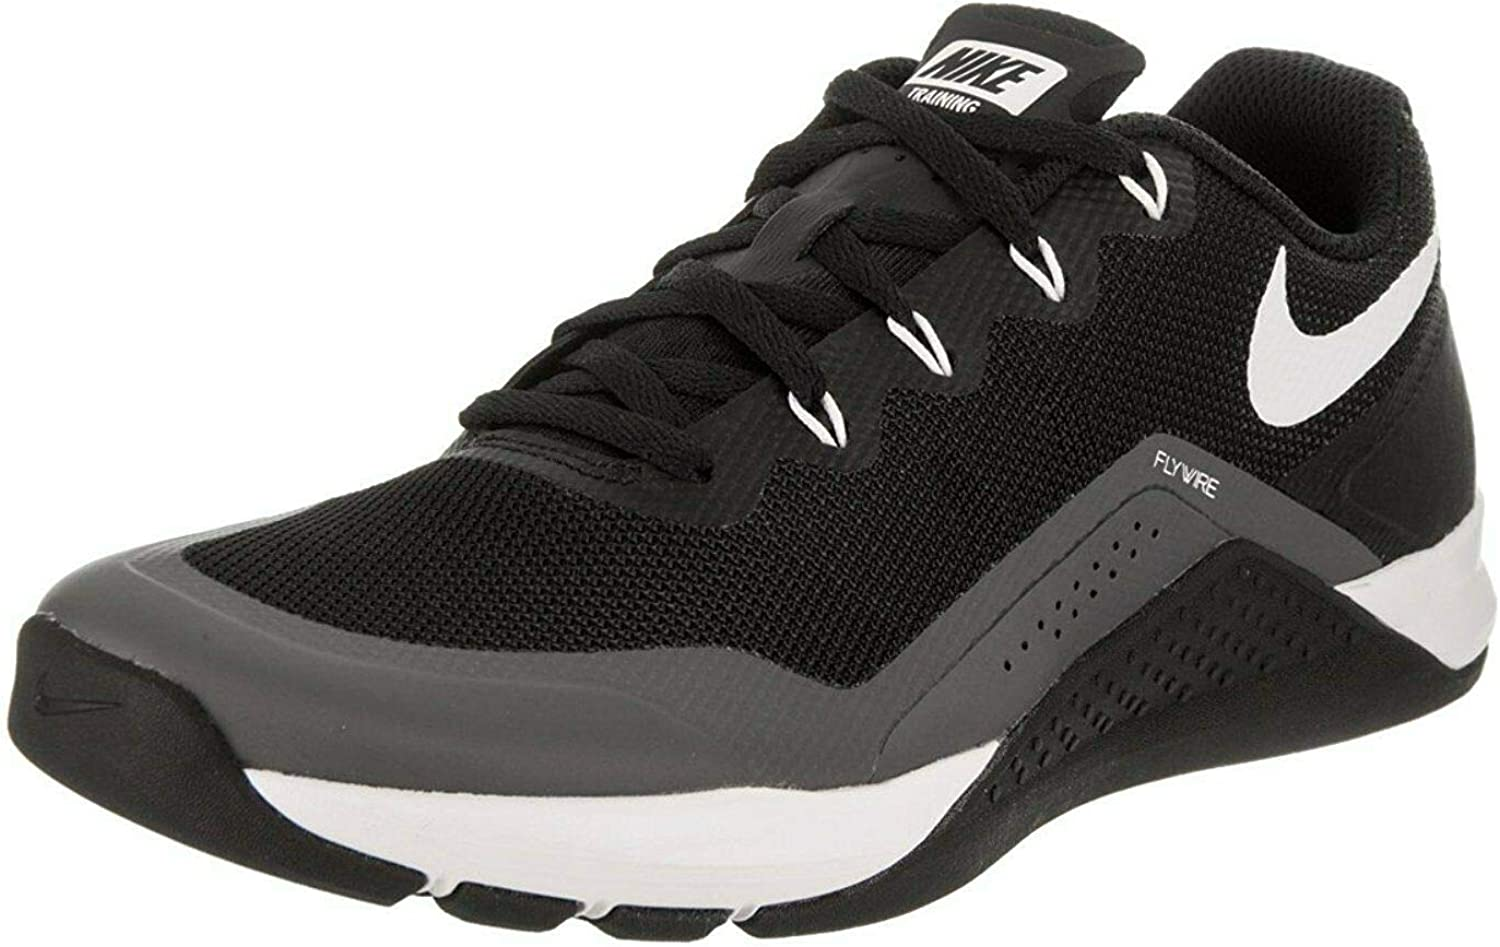 Nike Metcon Repper DSX Cross Now on sale Denver Mall Shoes Women's Training